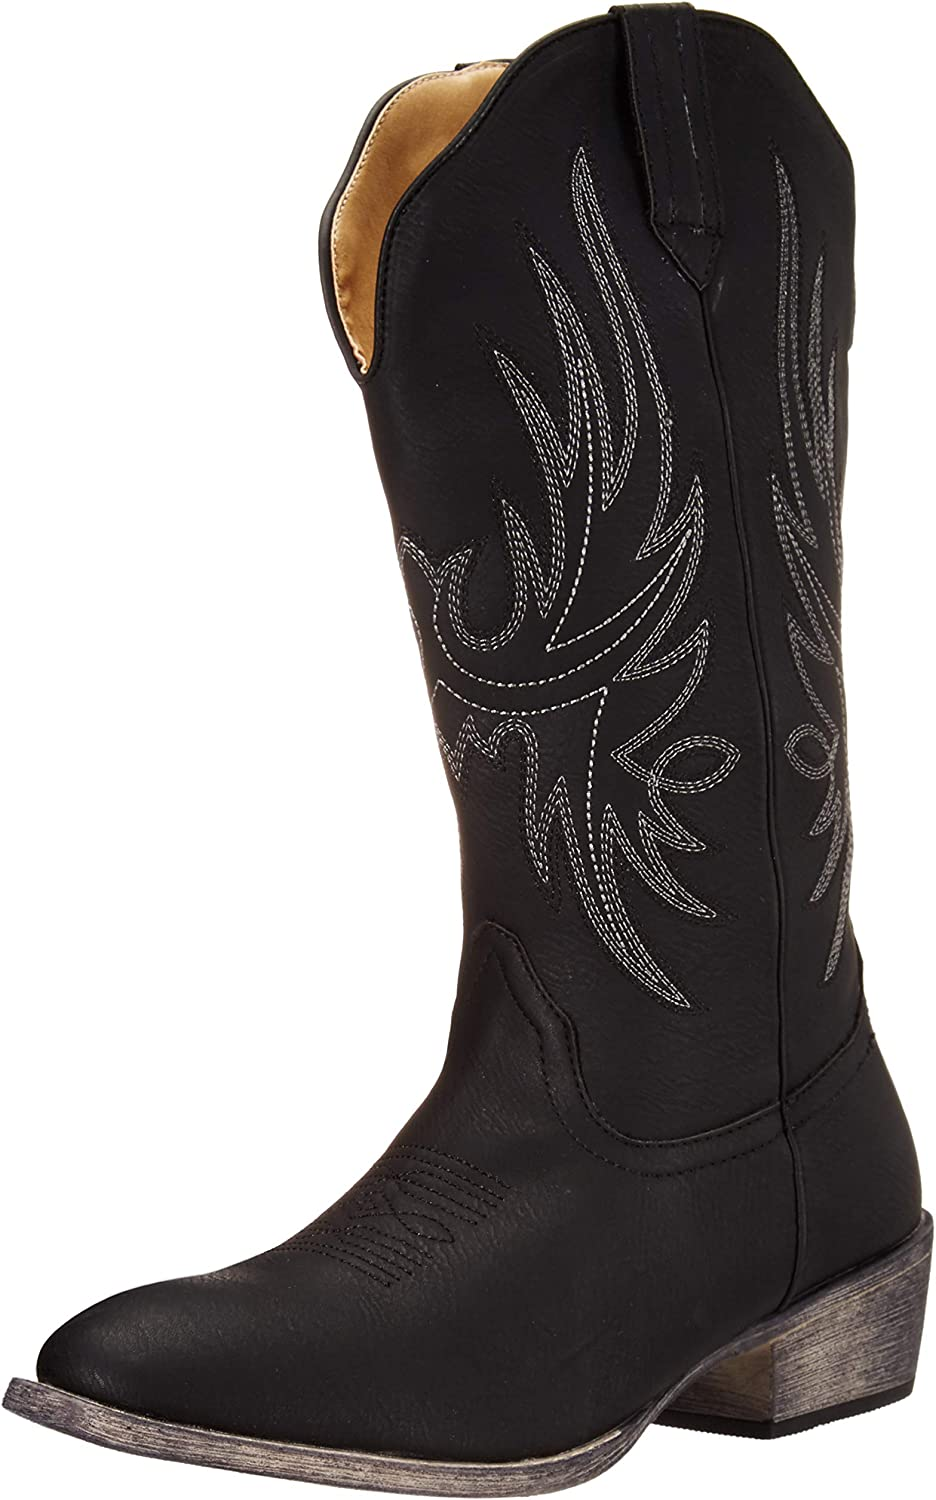 Silber Canyon Stiefel and Clothing Company Westcowgirl Cowboystiefel Cowboystiefel   Cimmaron Round Toe für Damen